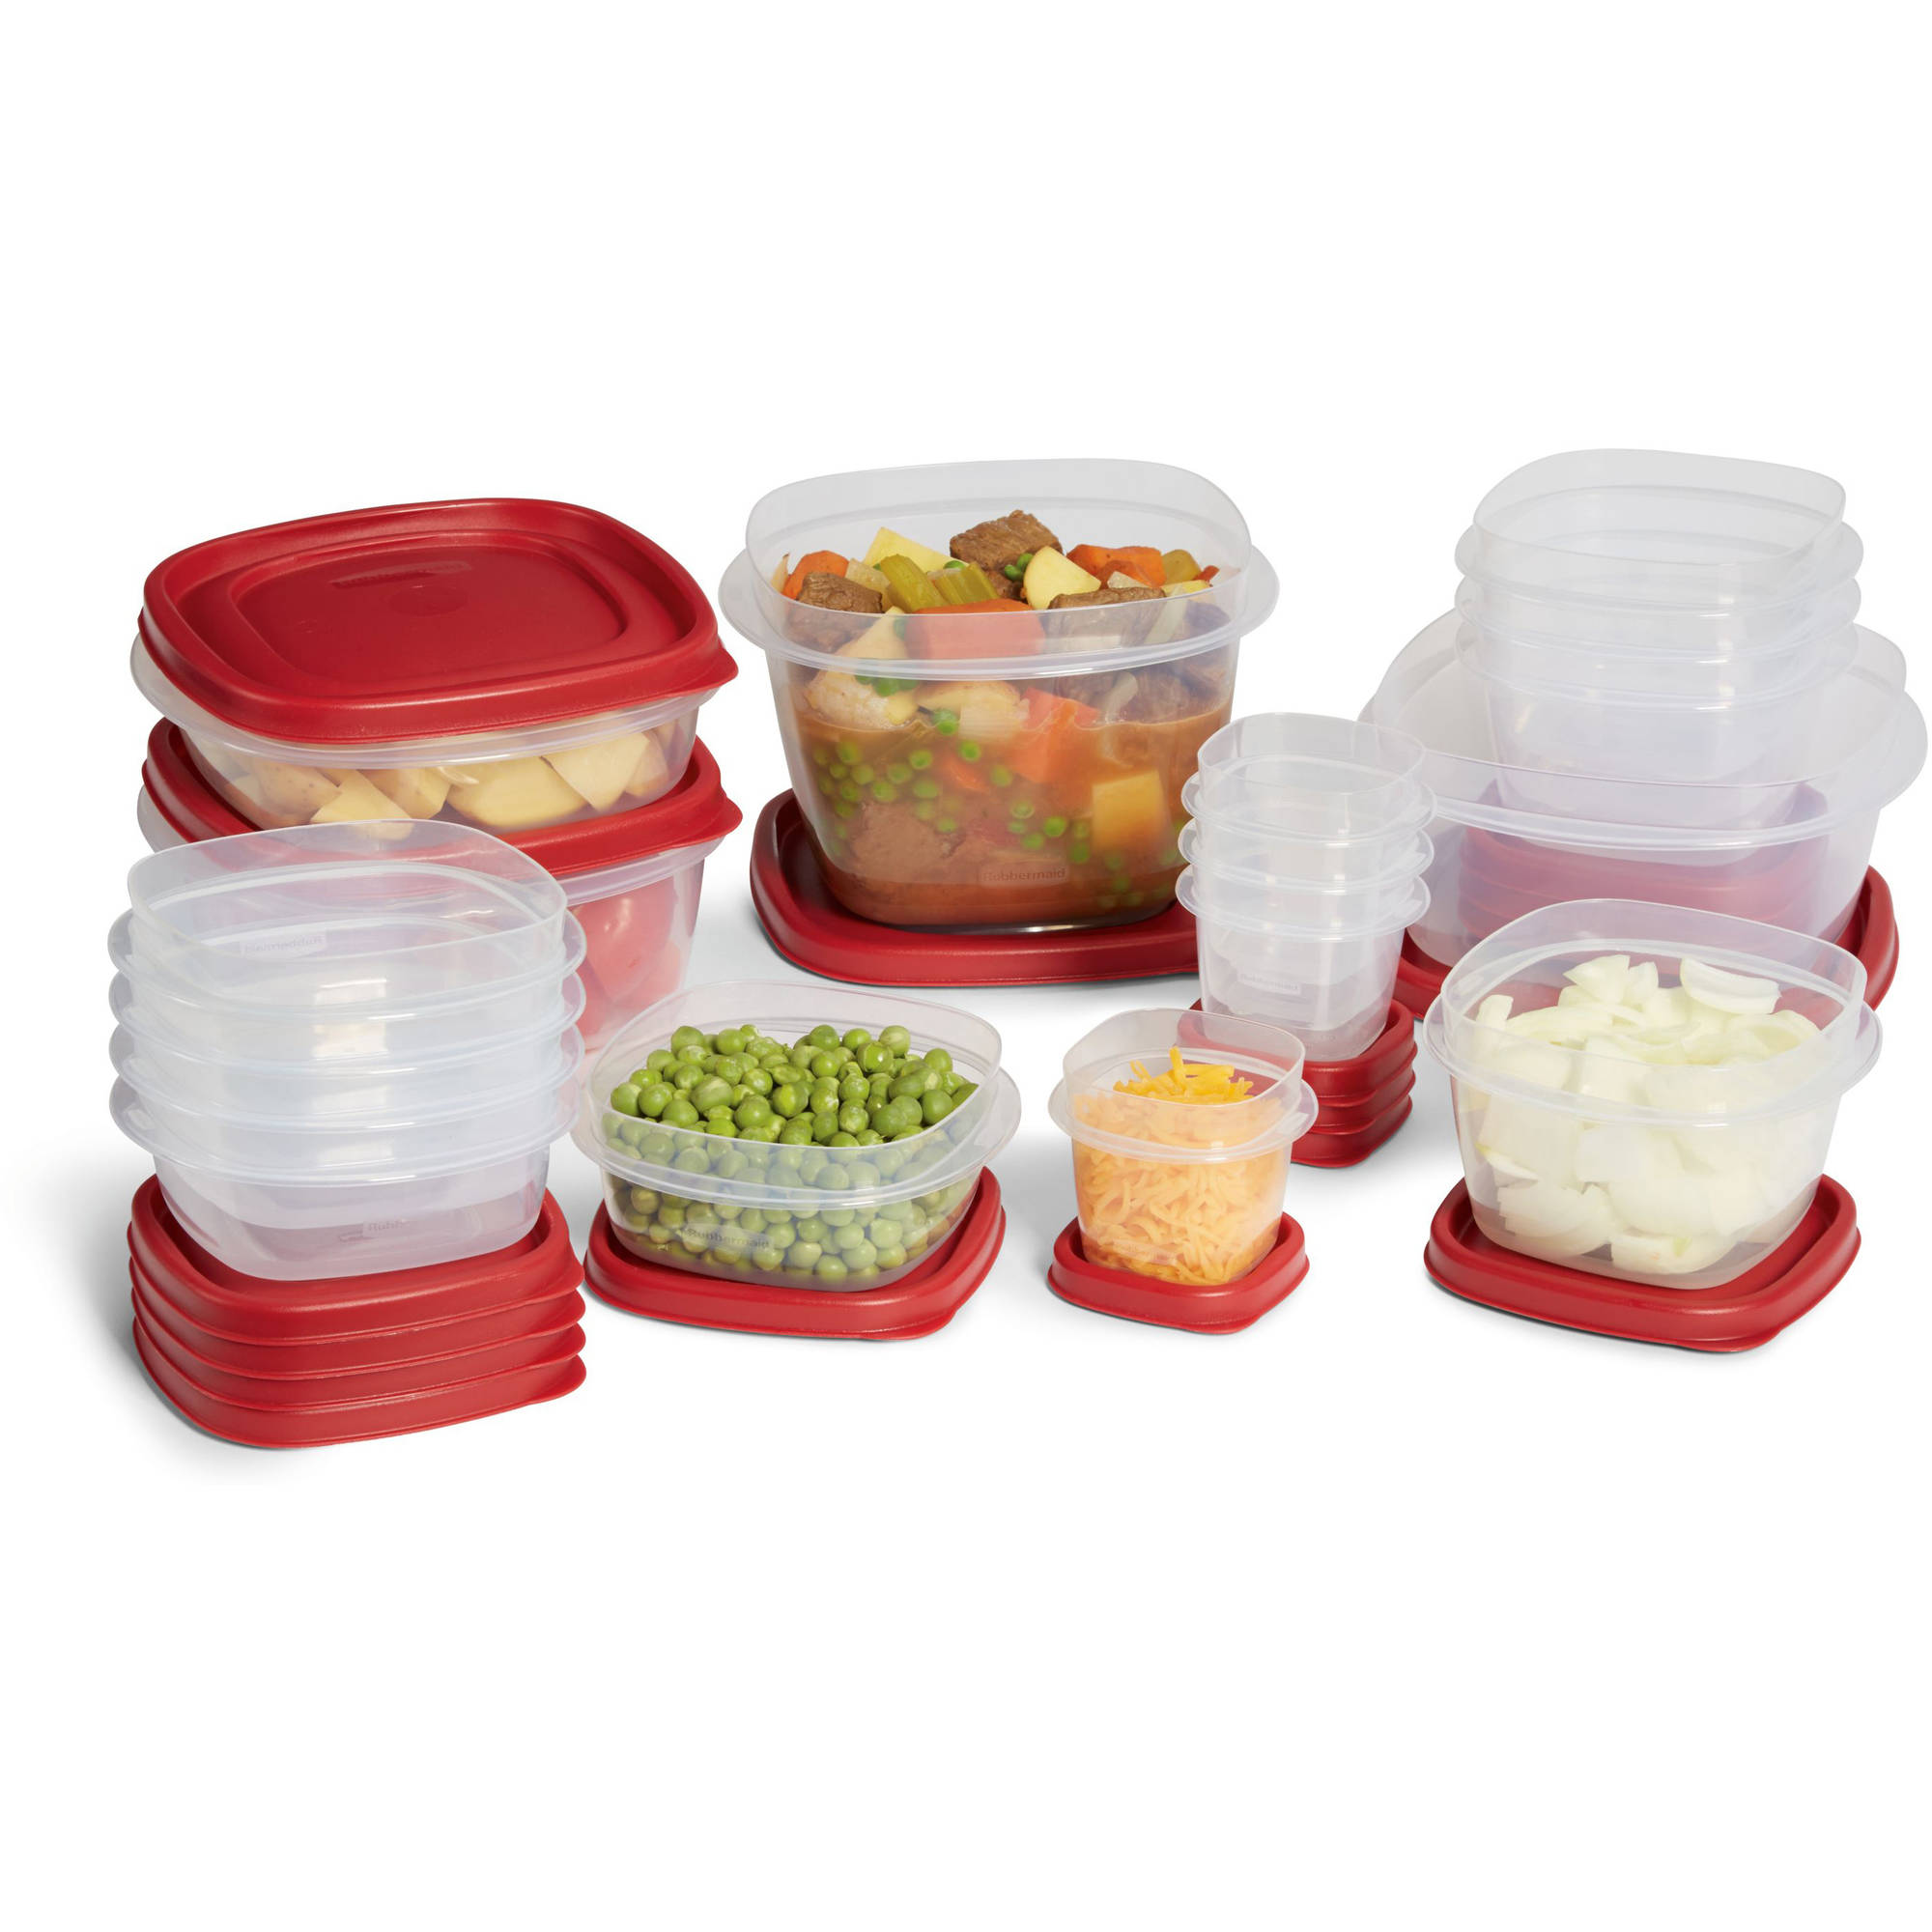 Rubbermaid Easy Find Lids 34-Piece Set, Red